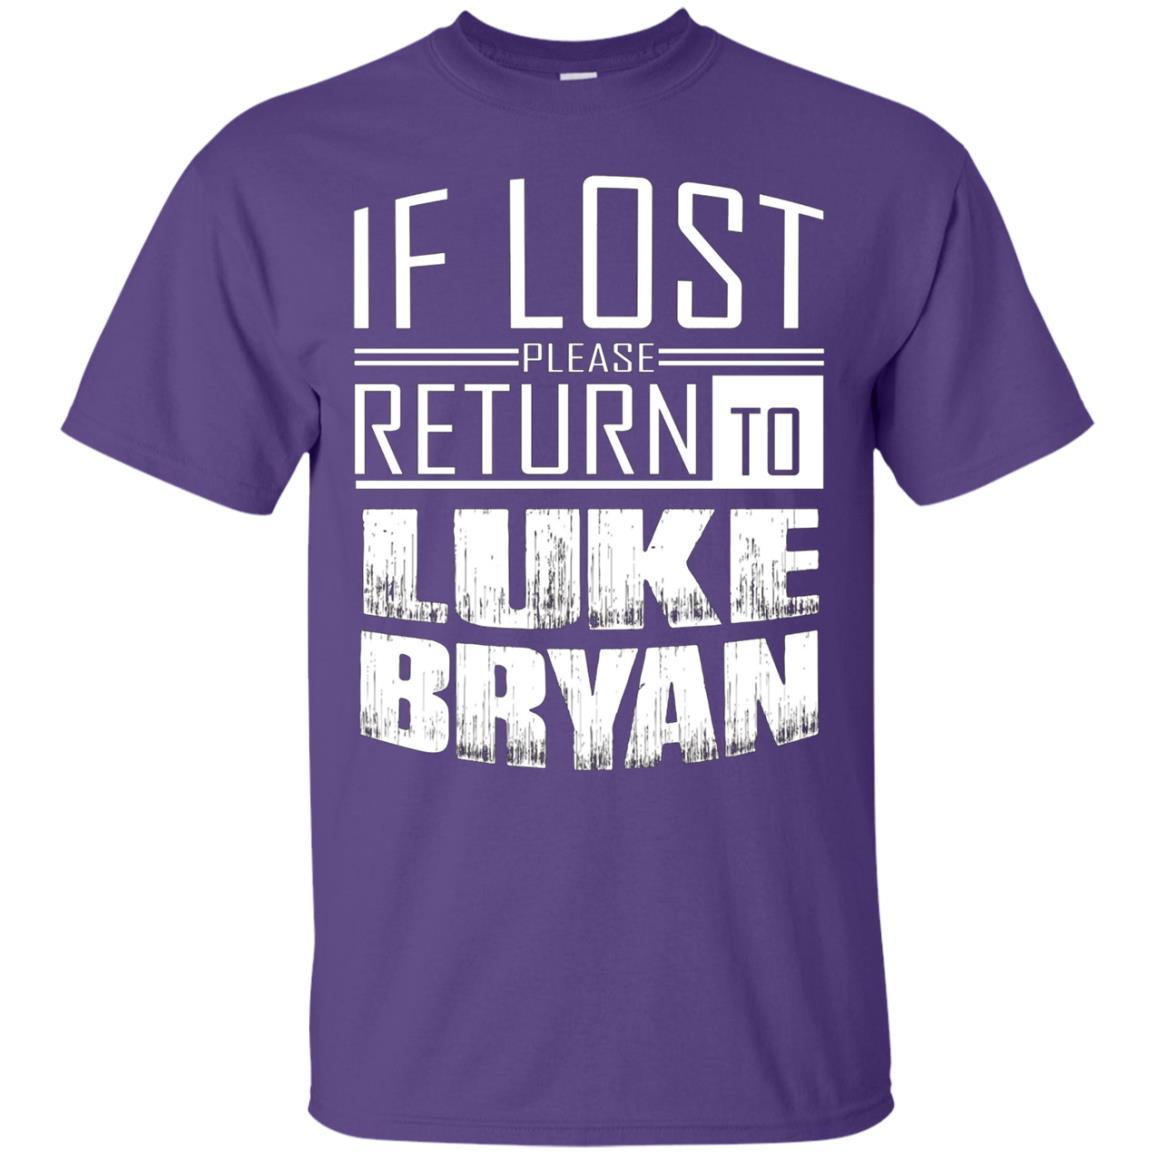 if lost please return to luke name bryan T-Shirt Purple / 5XL